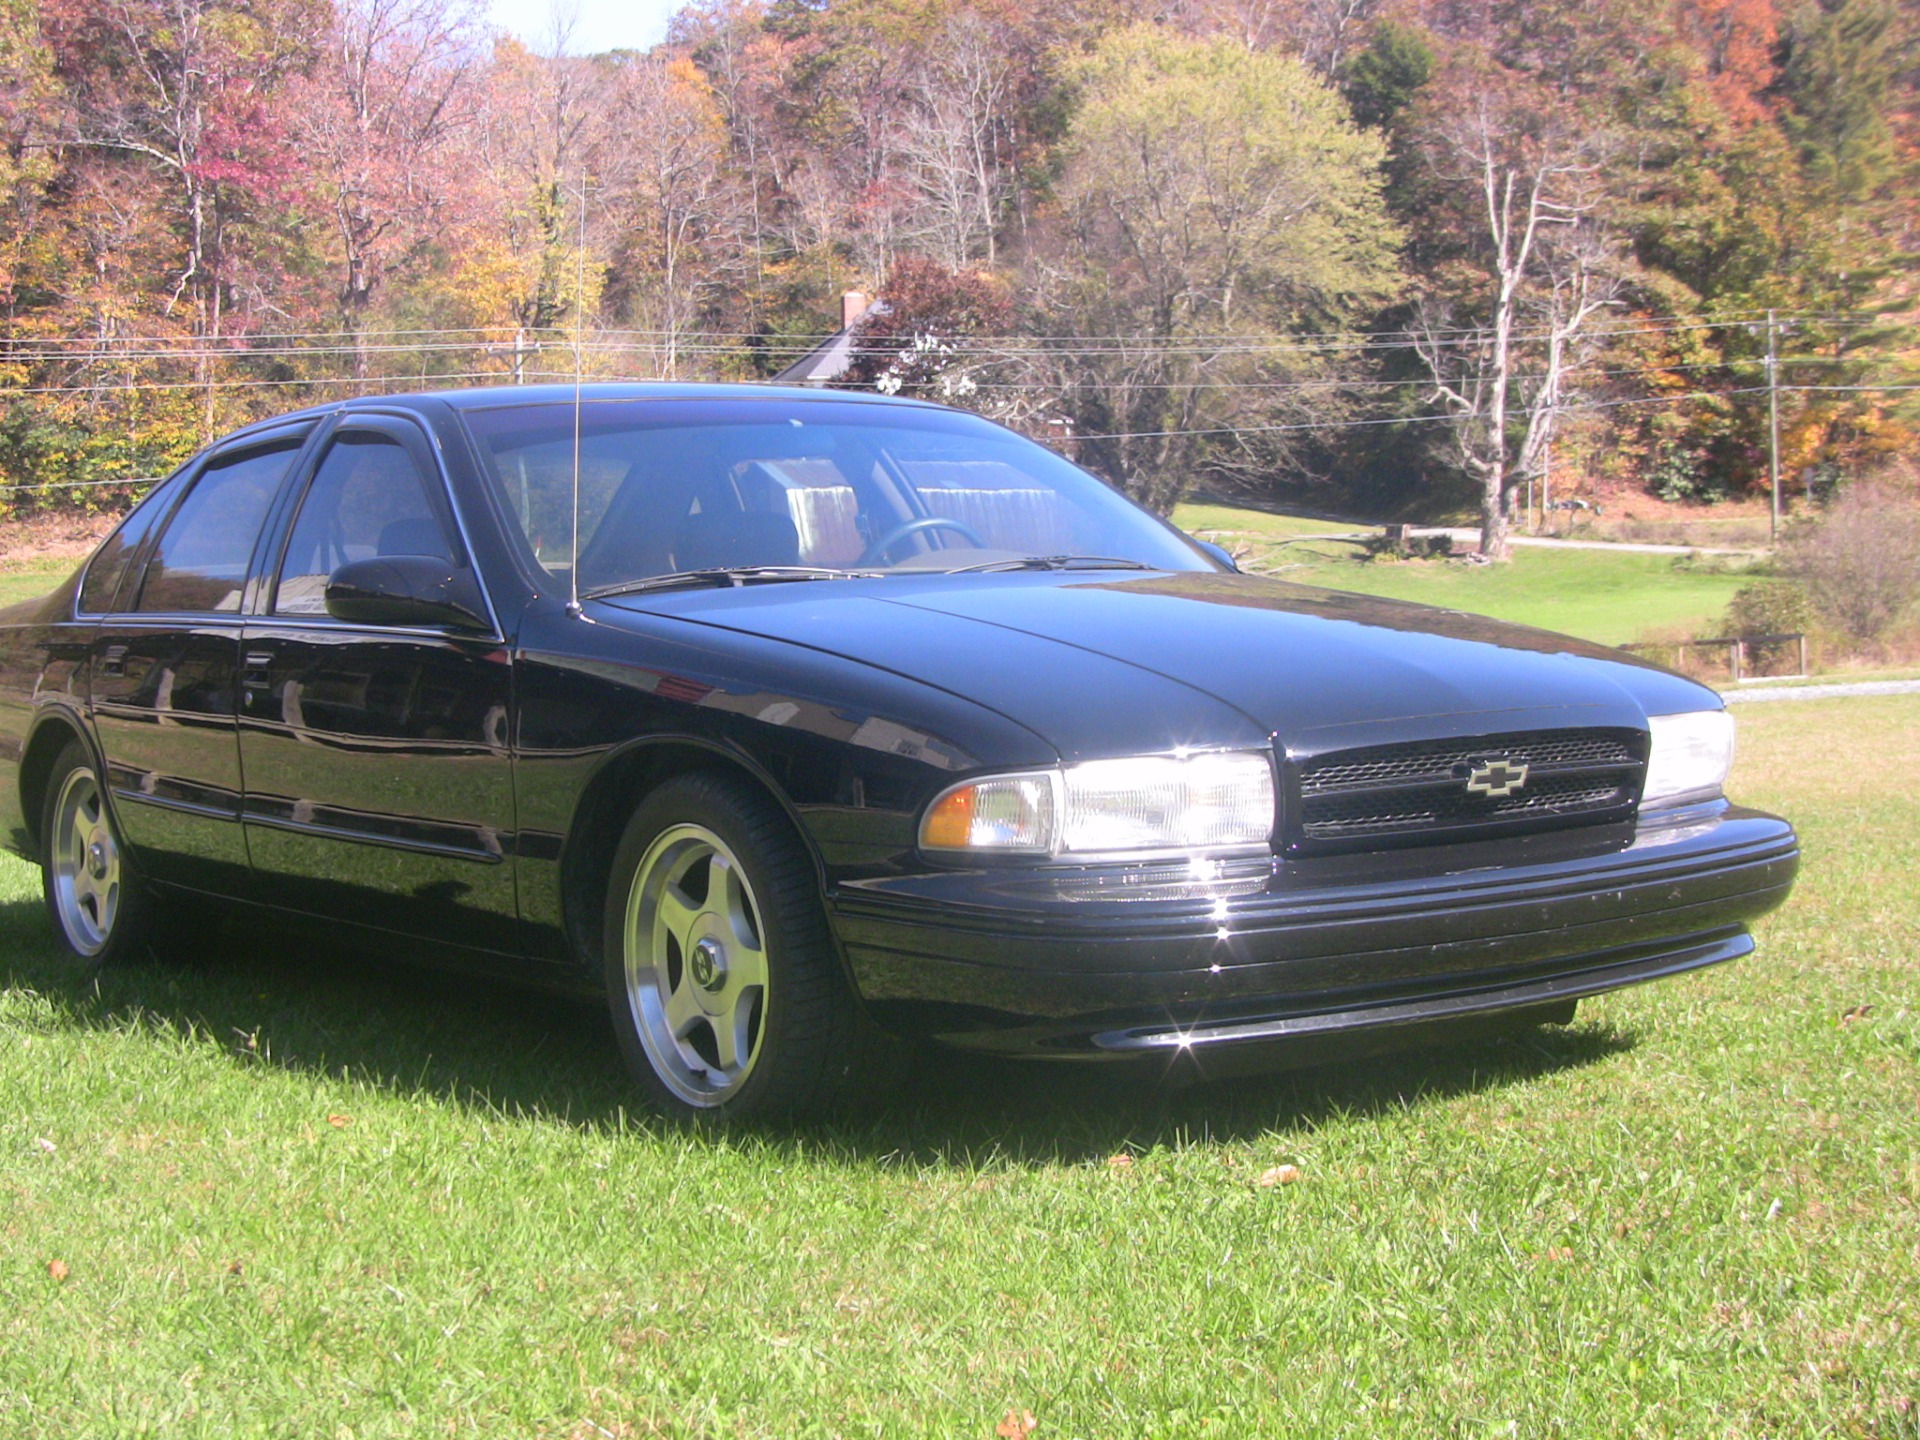 used 1995 chevrolet caprice ss for sale 10 700 classic lady motors stock a146 used 1995 chevrolet caprice ss for sale